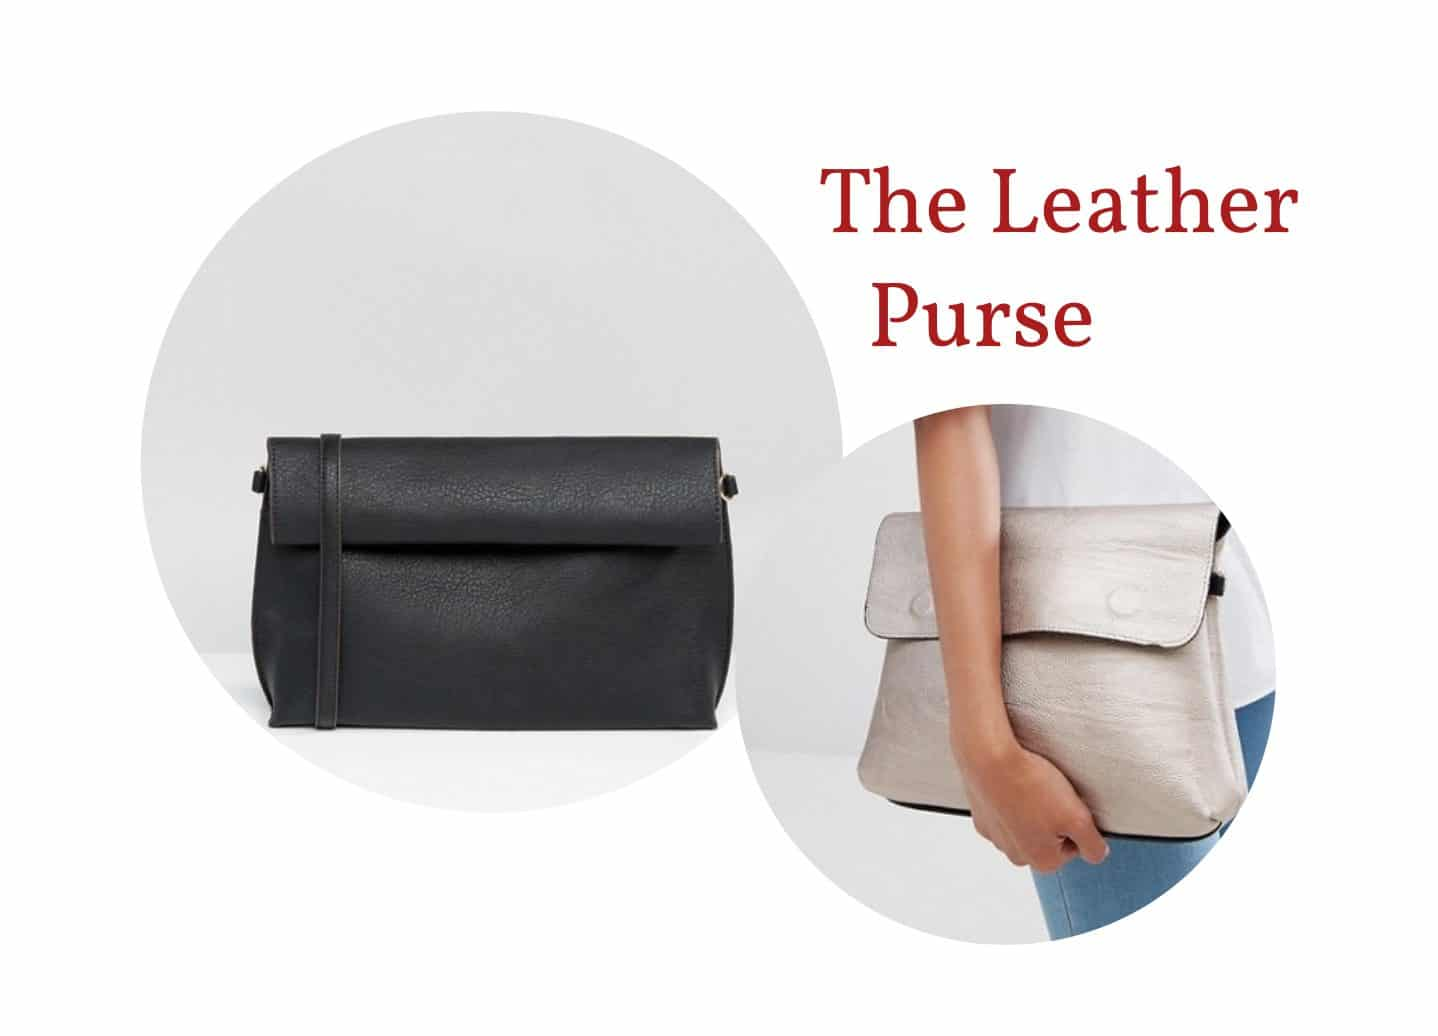 Reversible leather purse